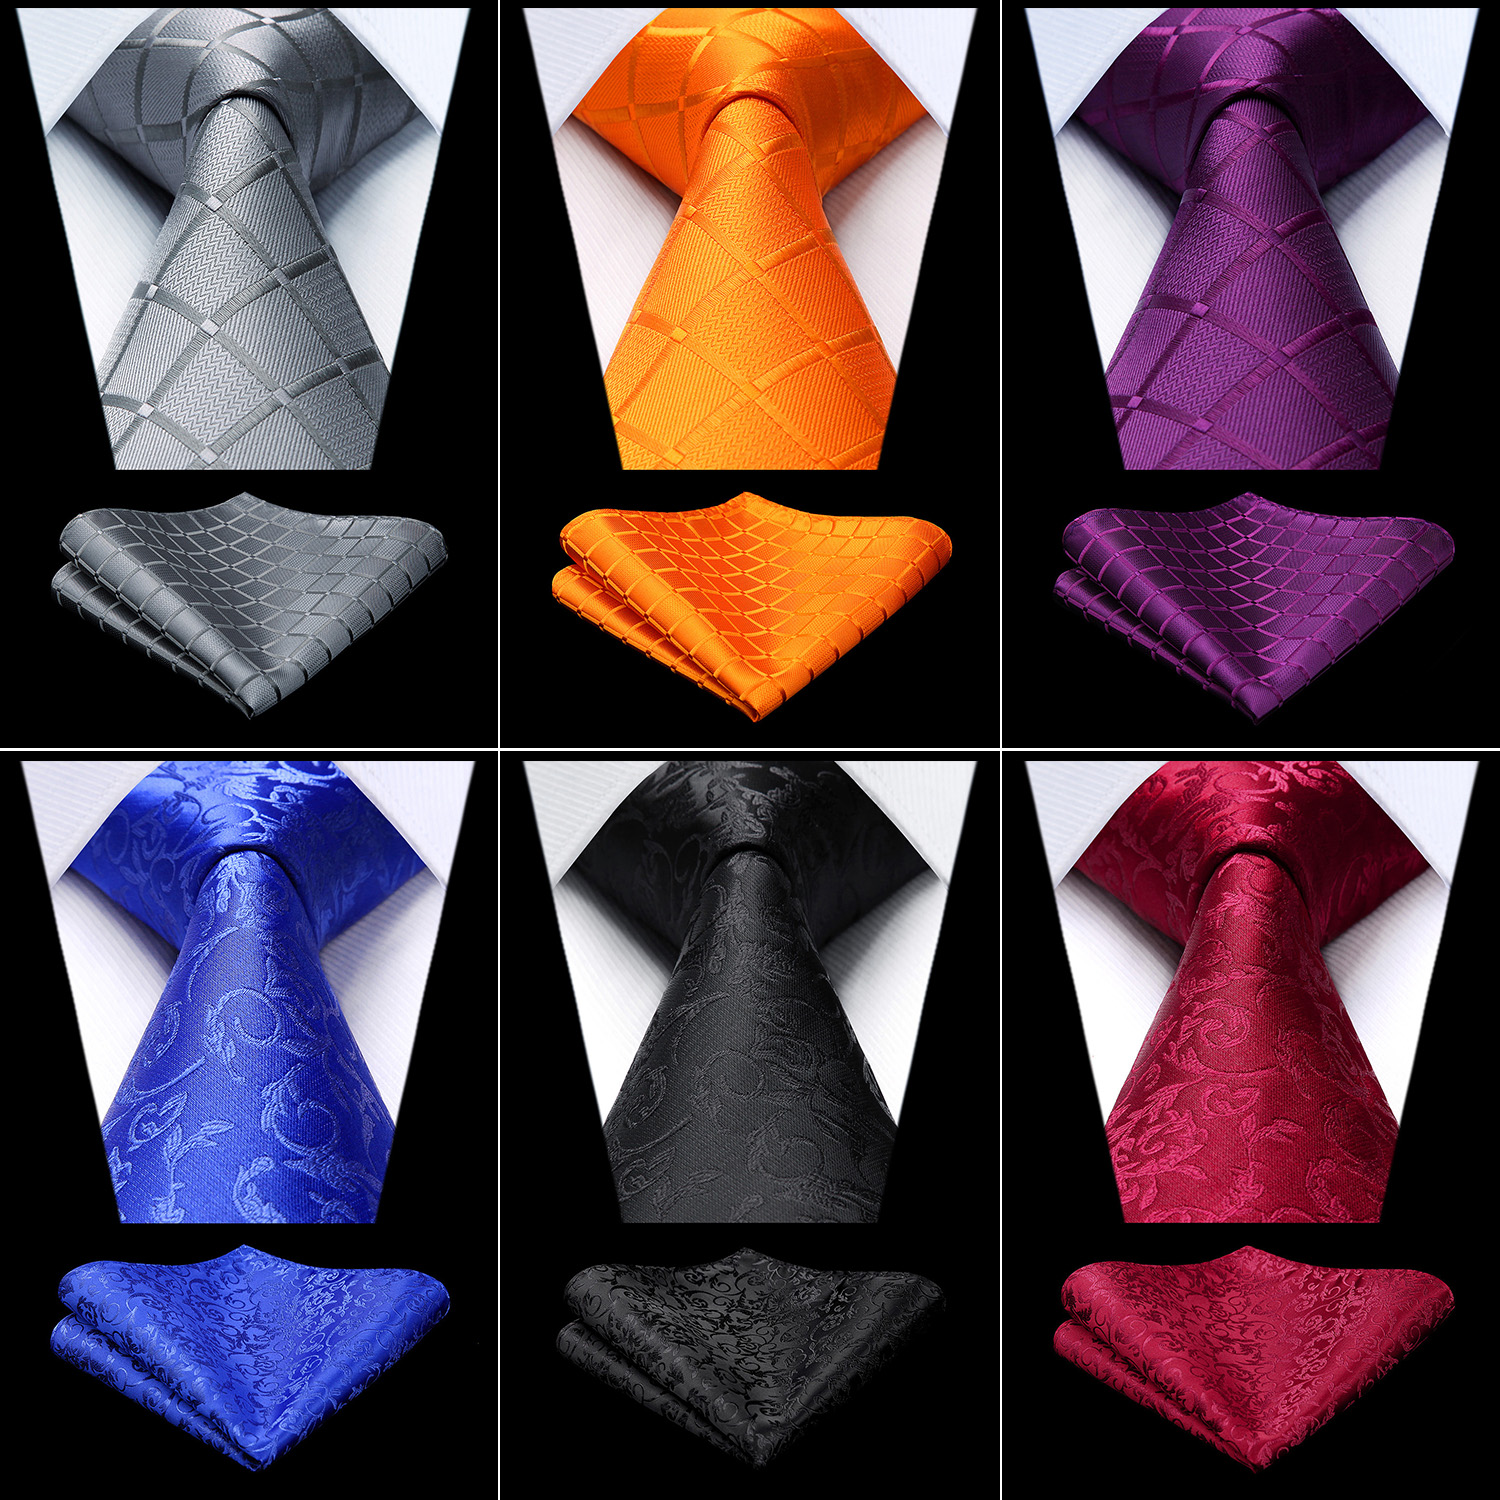 Party Wedding Men's Silk Woven Check Paisley Striped Neck Tie Pocket Square Set Classic Business Ties